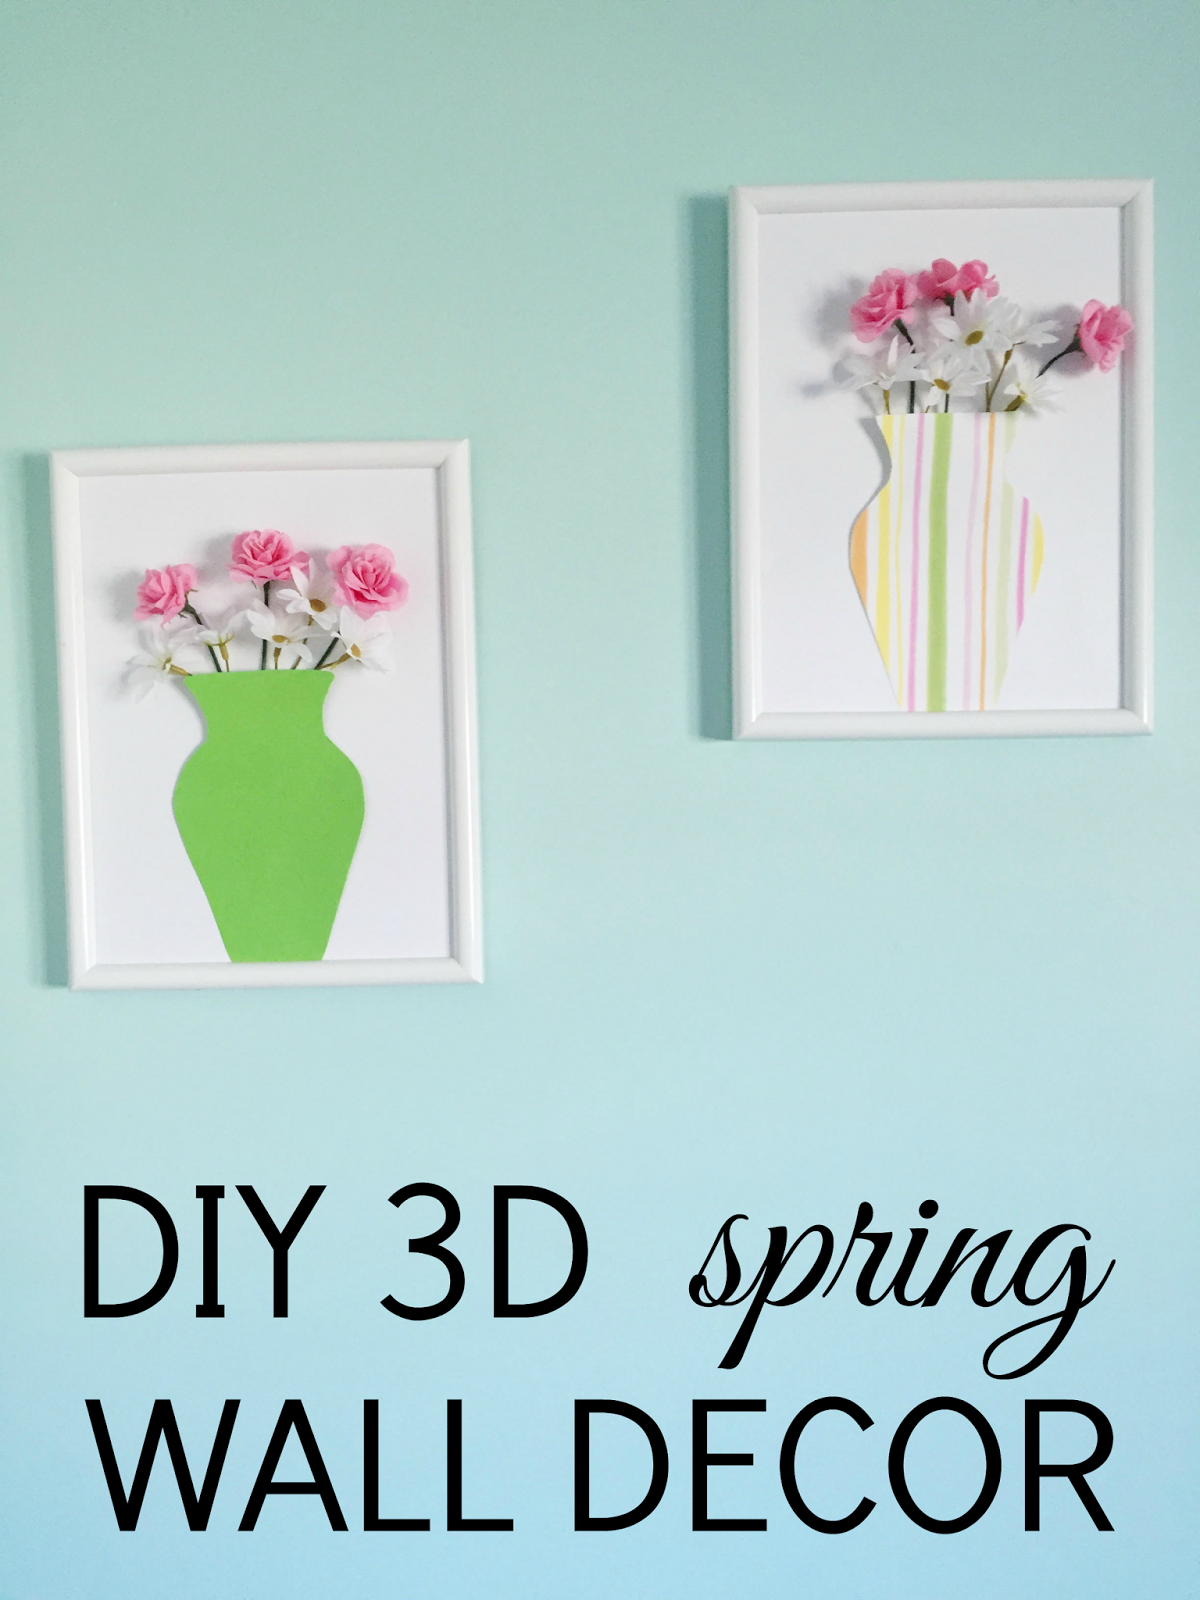 DIY 3D Spring Wall Decor